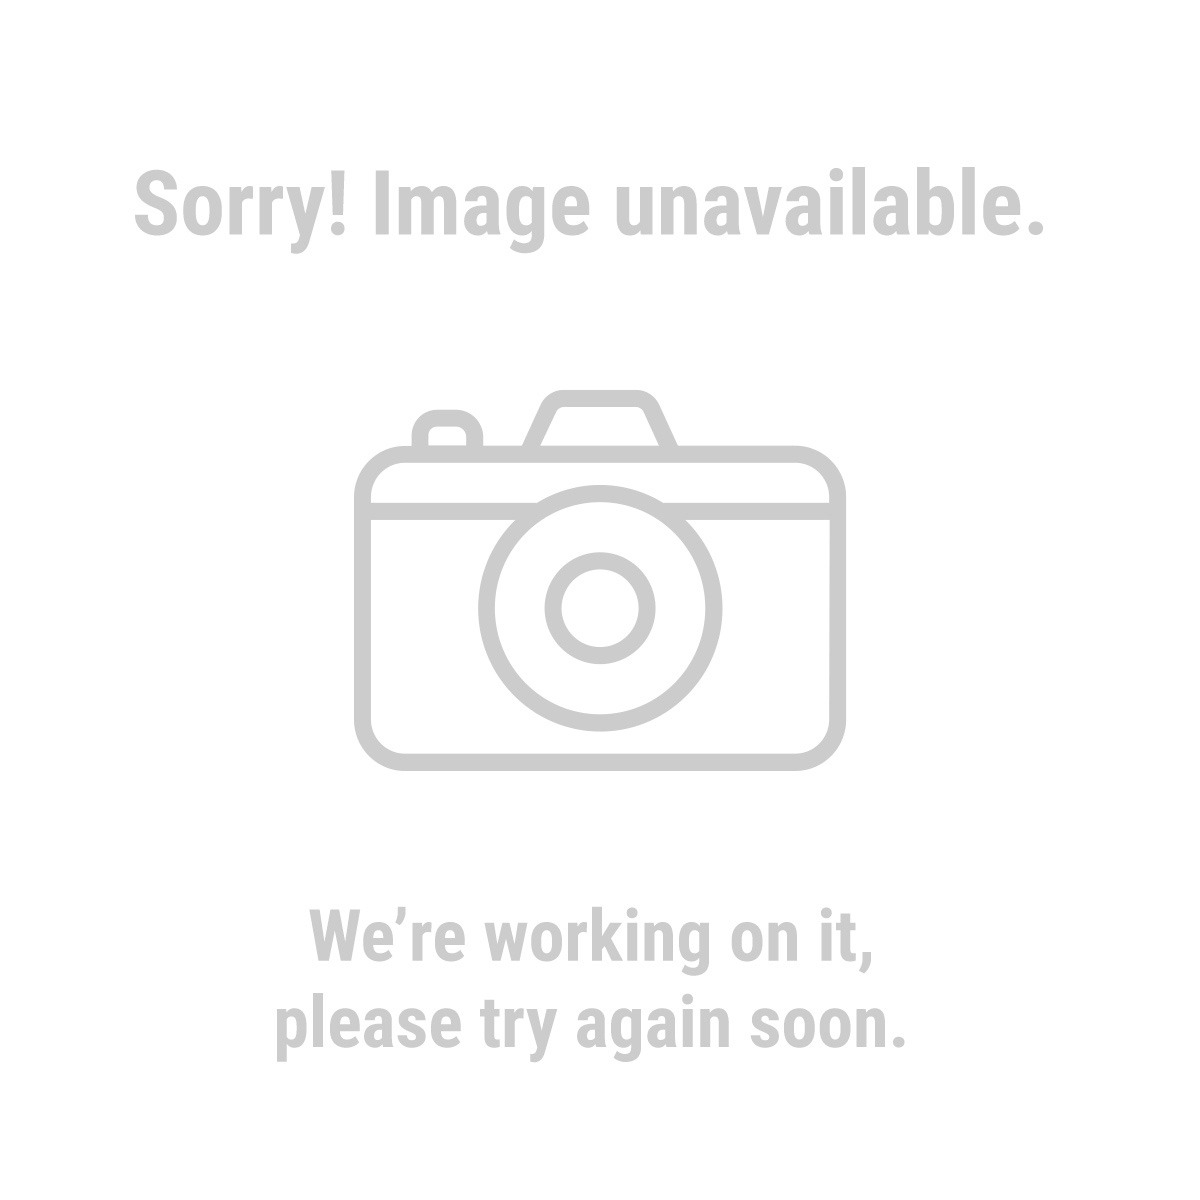 Haul-Master® 63056 400 lb. Capacity 1 in. x 15 ft. Ratcheting Tie Downs 4 Pc